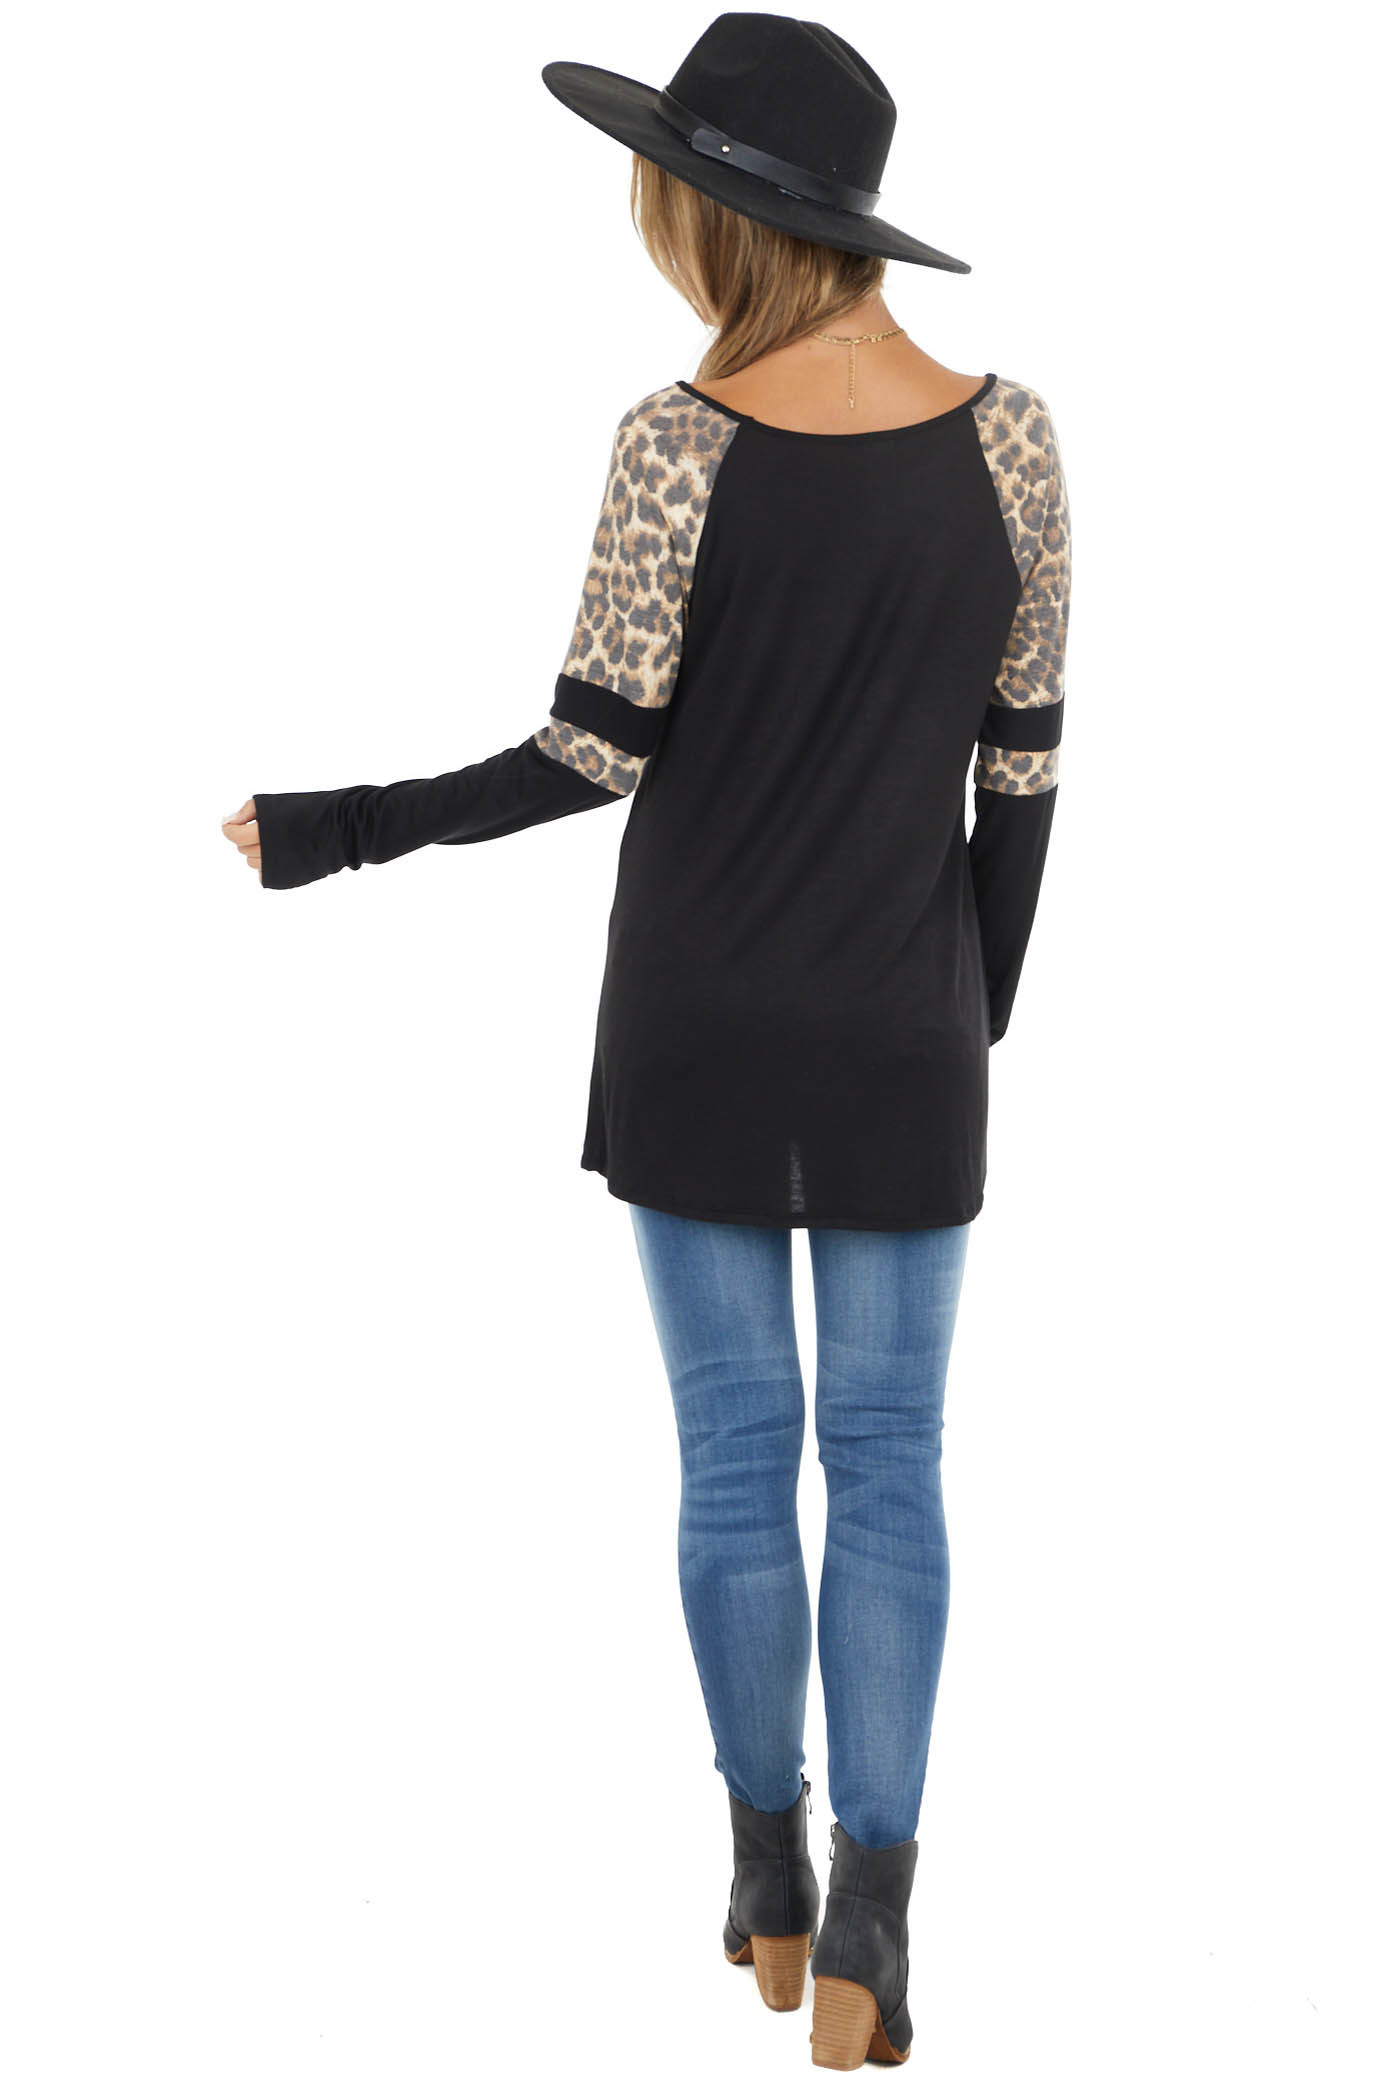 Black Stretchy Knit Top with Raglan Leopard Print Sleeves